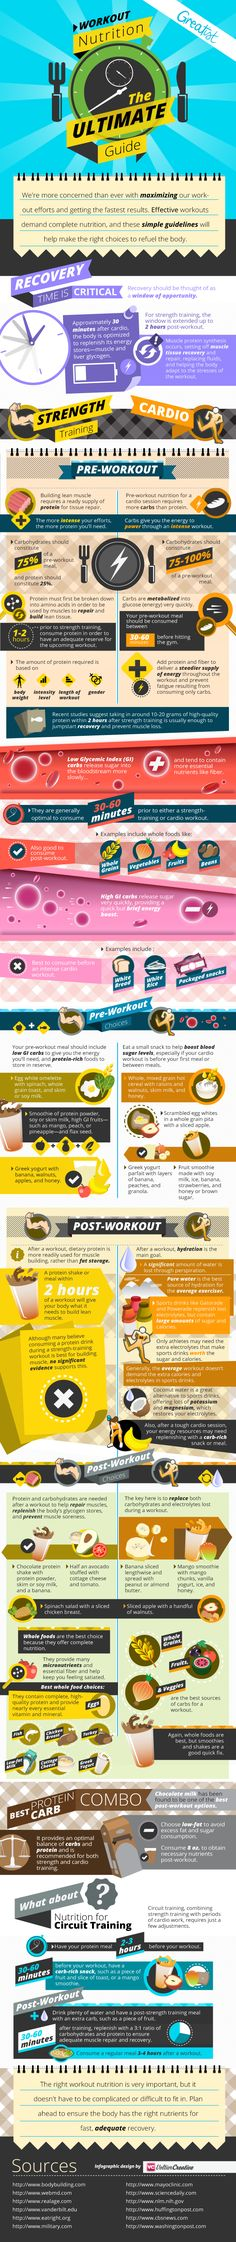 The Complete Guide to Workout Nutriton [Infographic]. Great graphic, but great text in the post as well. Check this out!